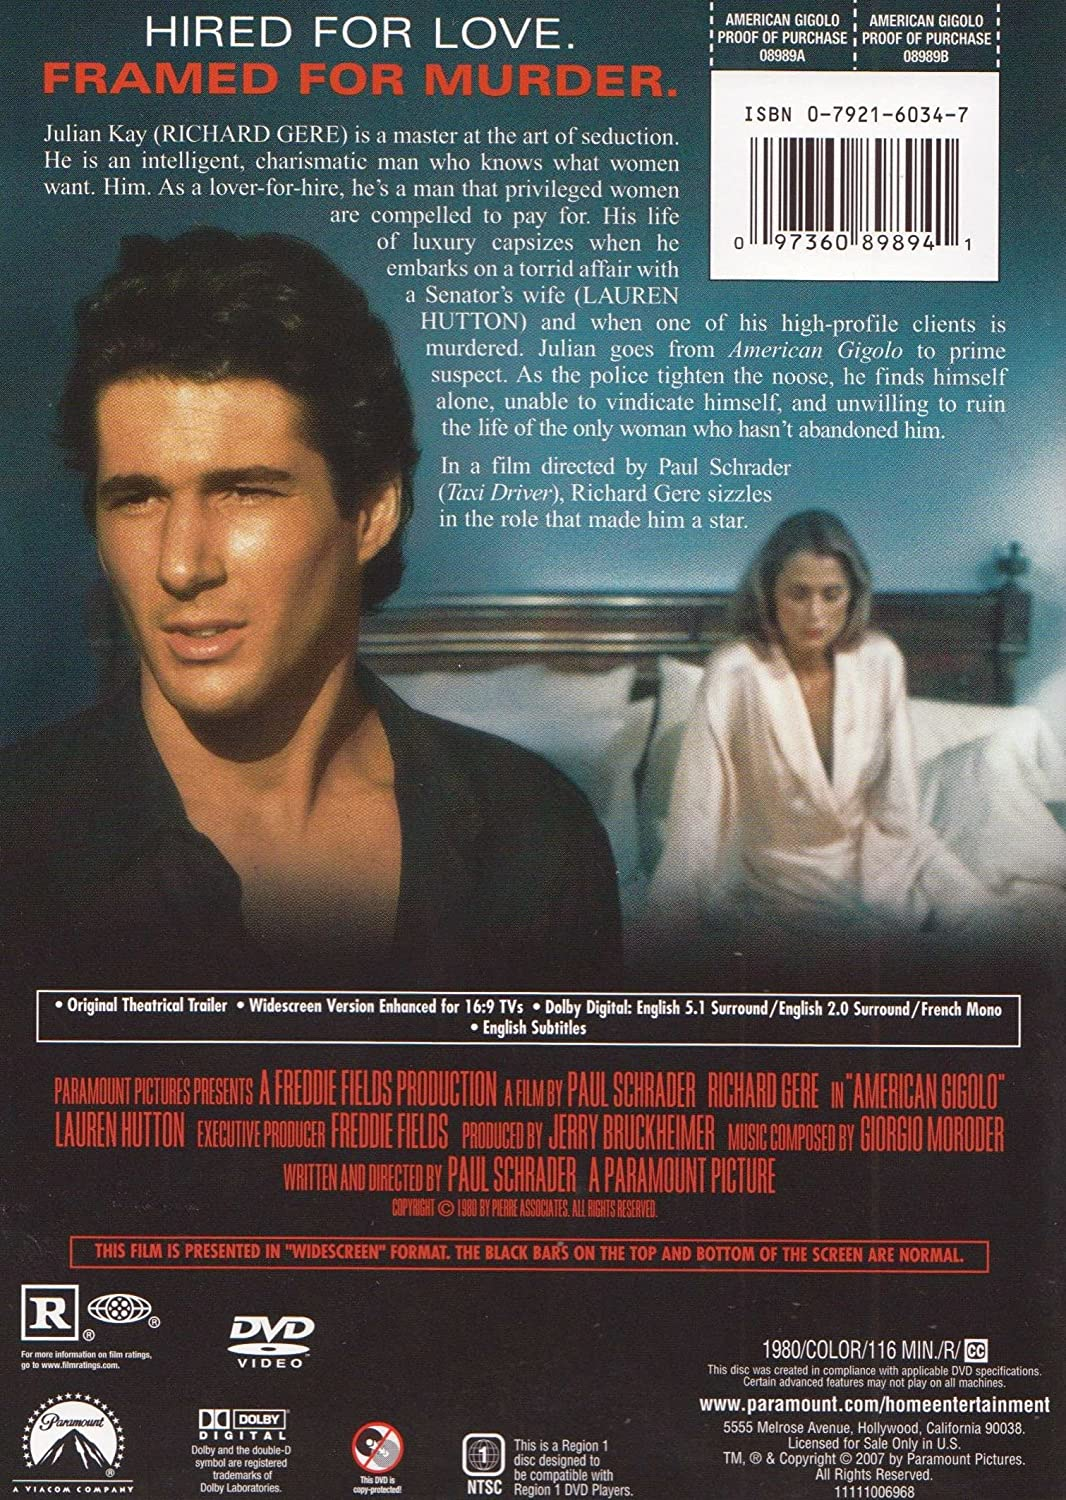 American Gigolo [Reino Unido] [DVD]: Amazon.es: Cine y Series TV